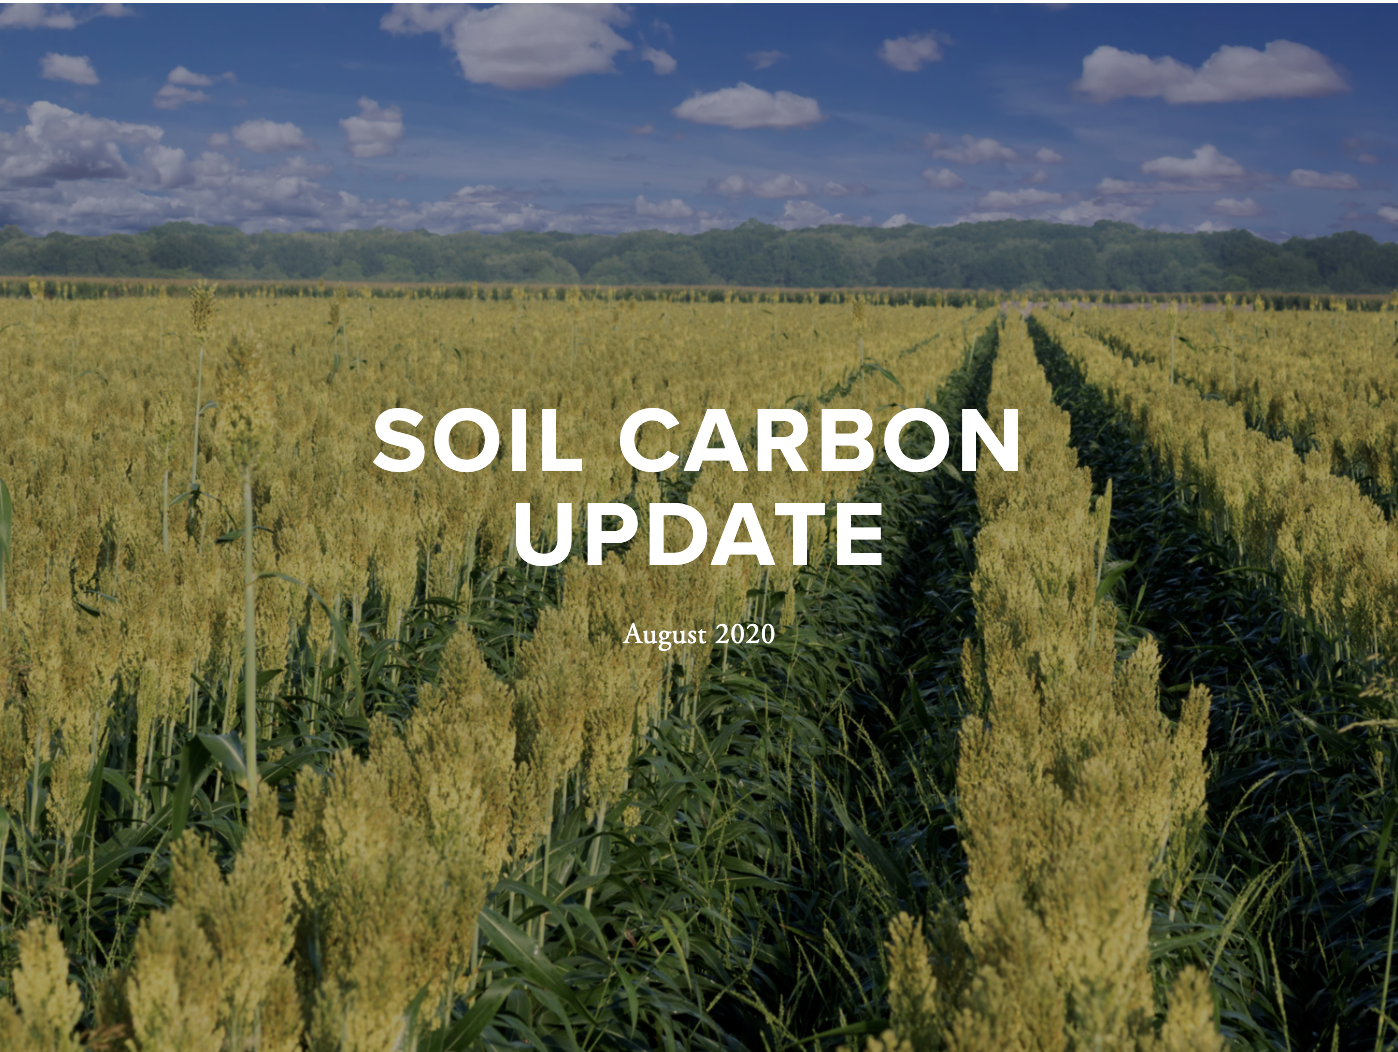 August 2019 UPDATE - This update includes features on soil champions, research developments, Programs and tools for farmers, new initiatives, corporate leadership, policy updates recent media, and conferences.